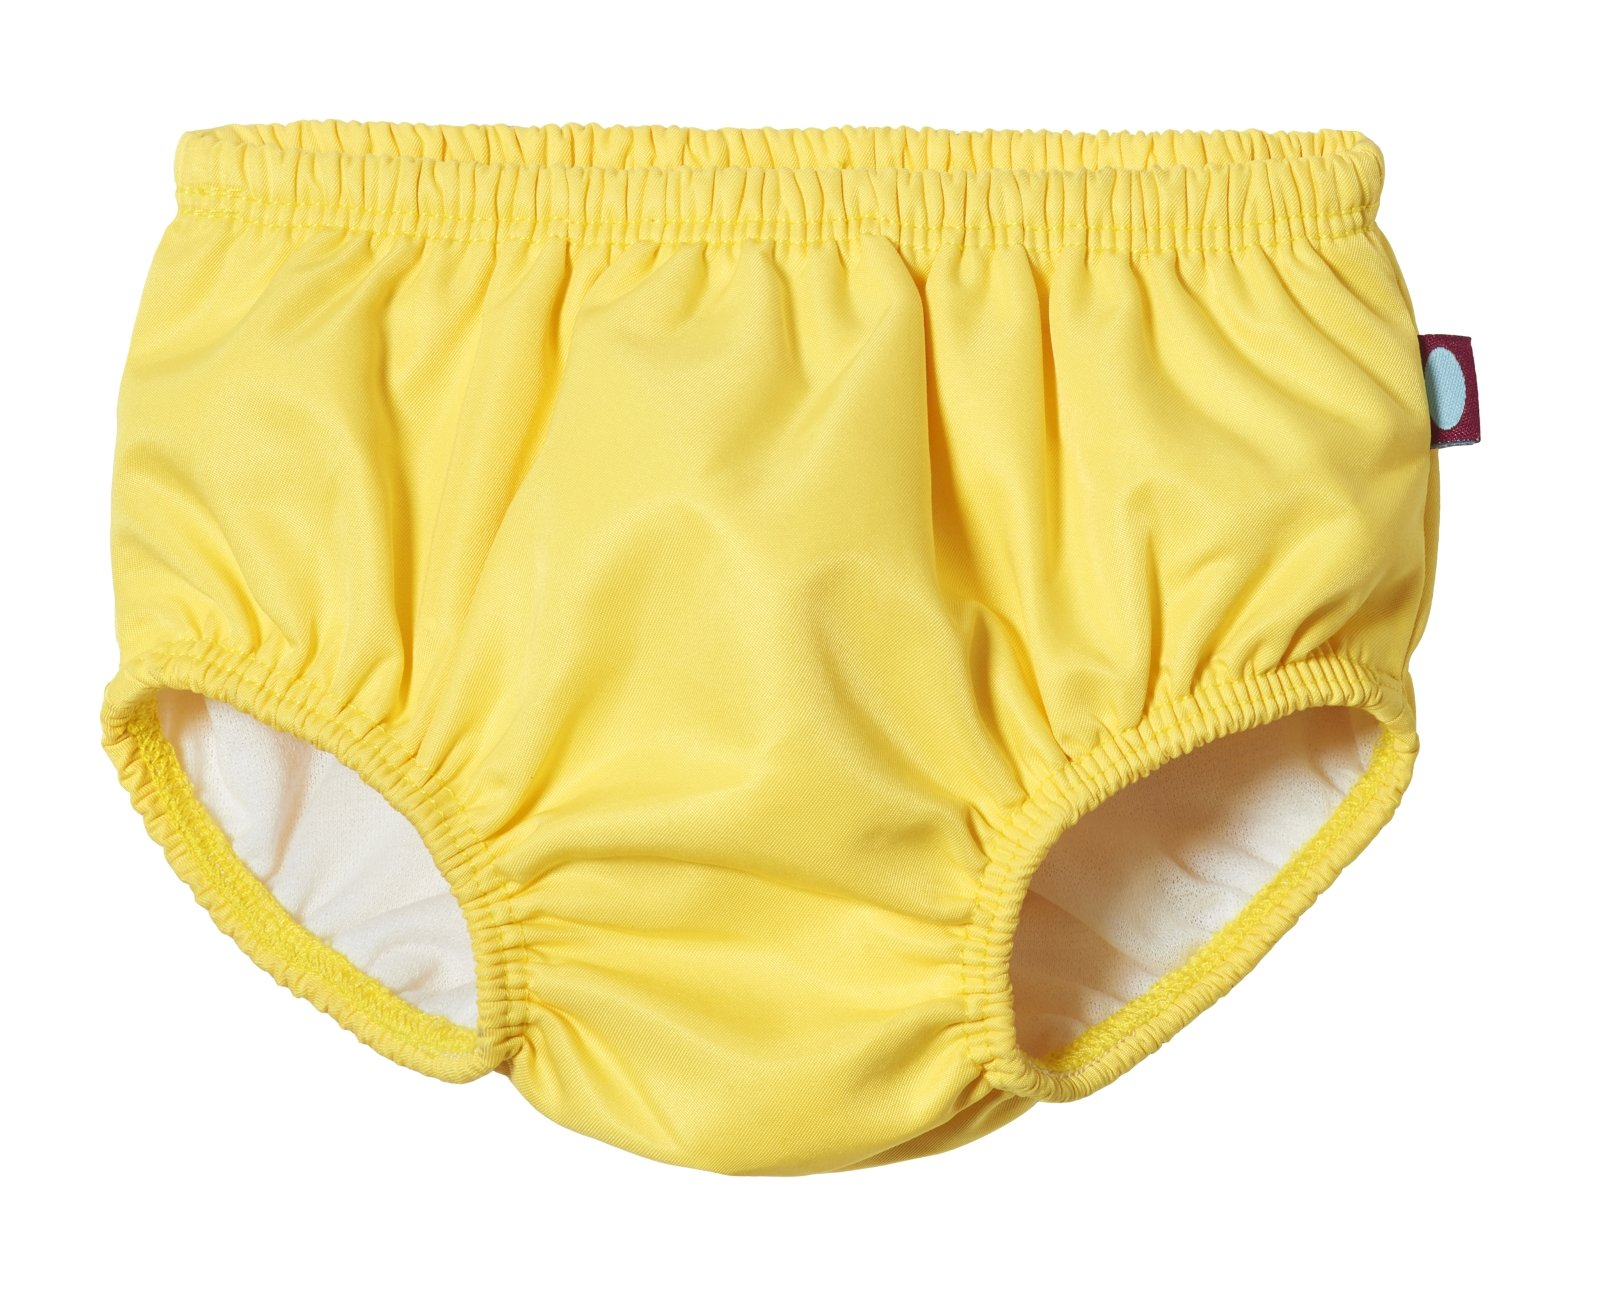 City Threads Baby Girls' and Boys' Swim Diaper Cover Reusable Leakproof for Swimming Pool Lessons Beach, Yellow, 3/6m